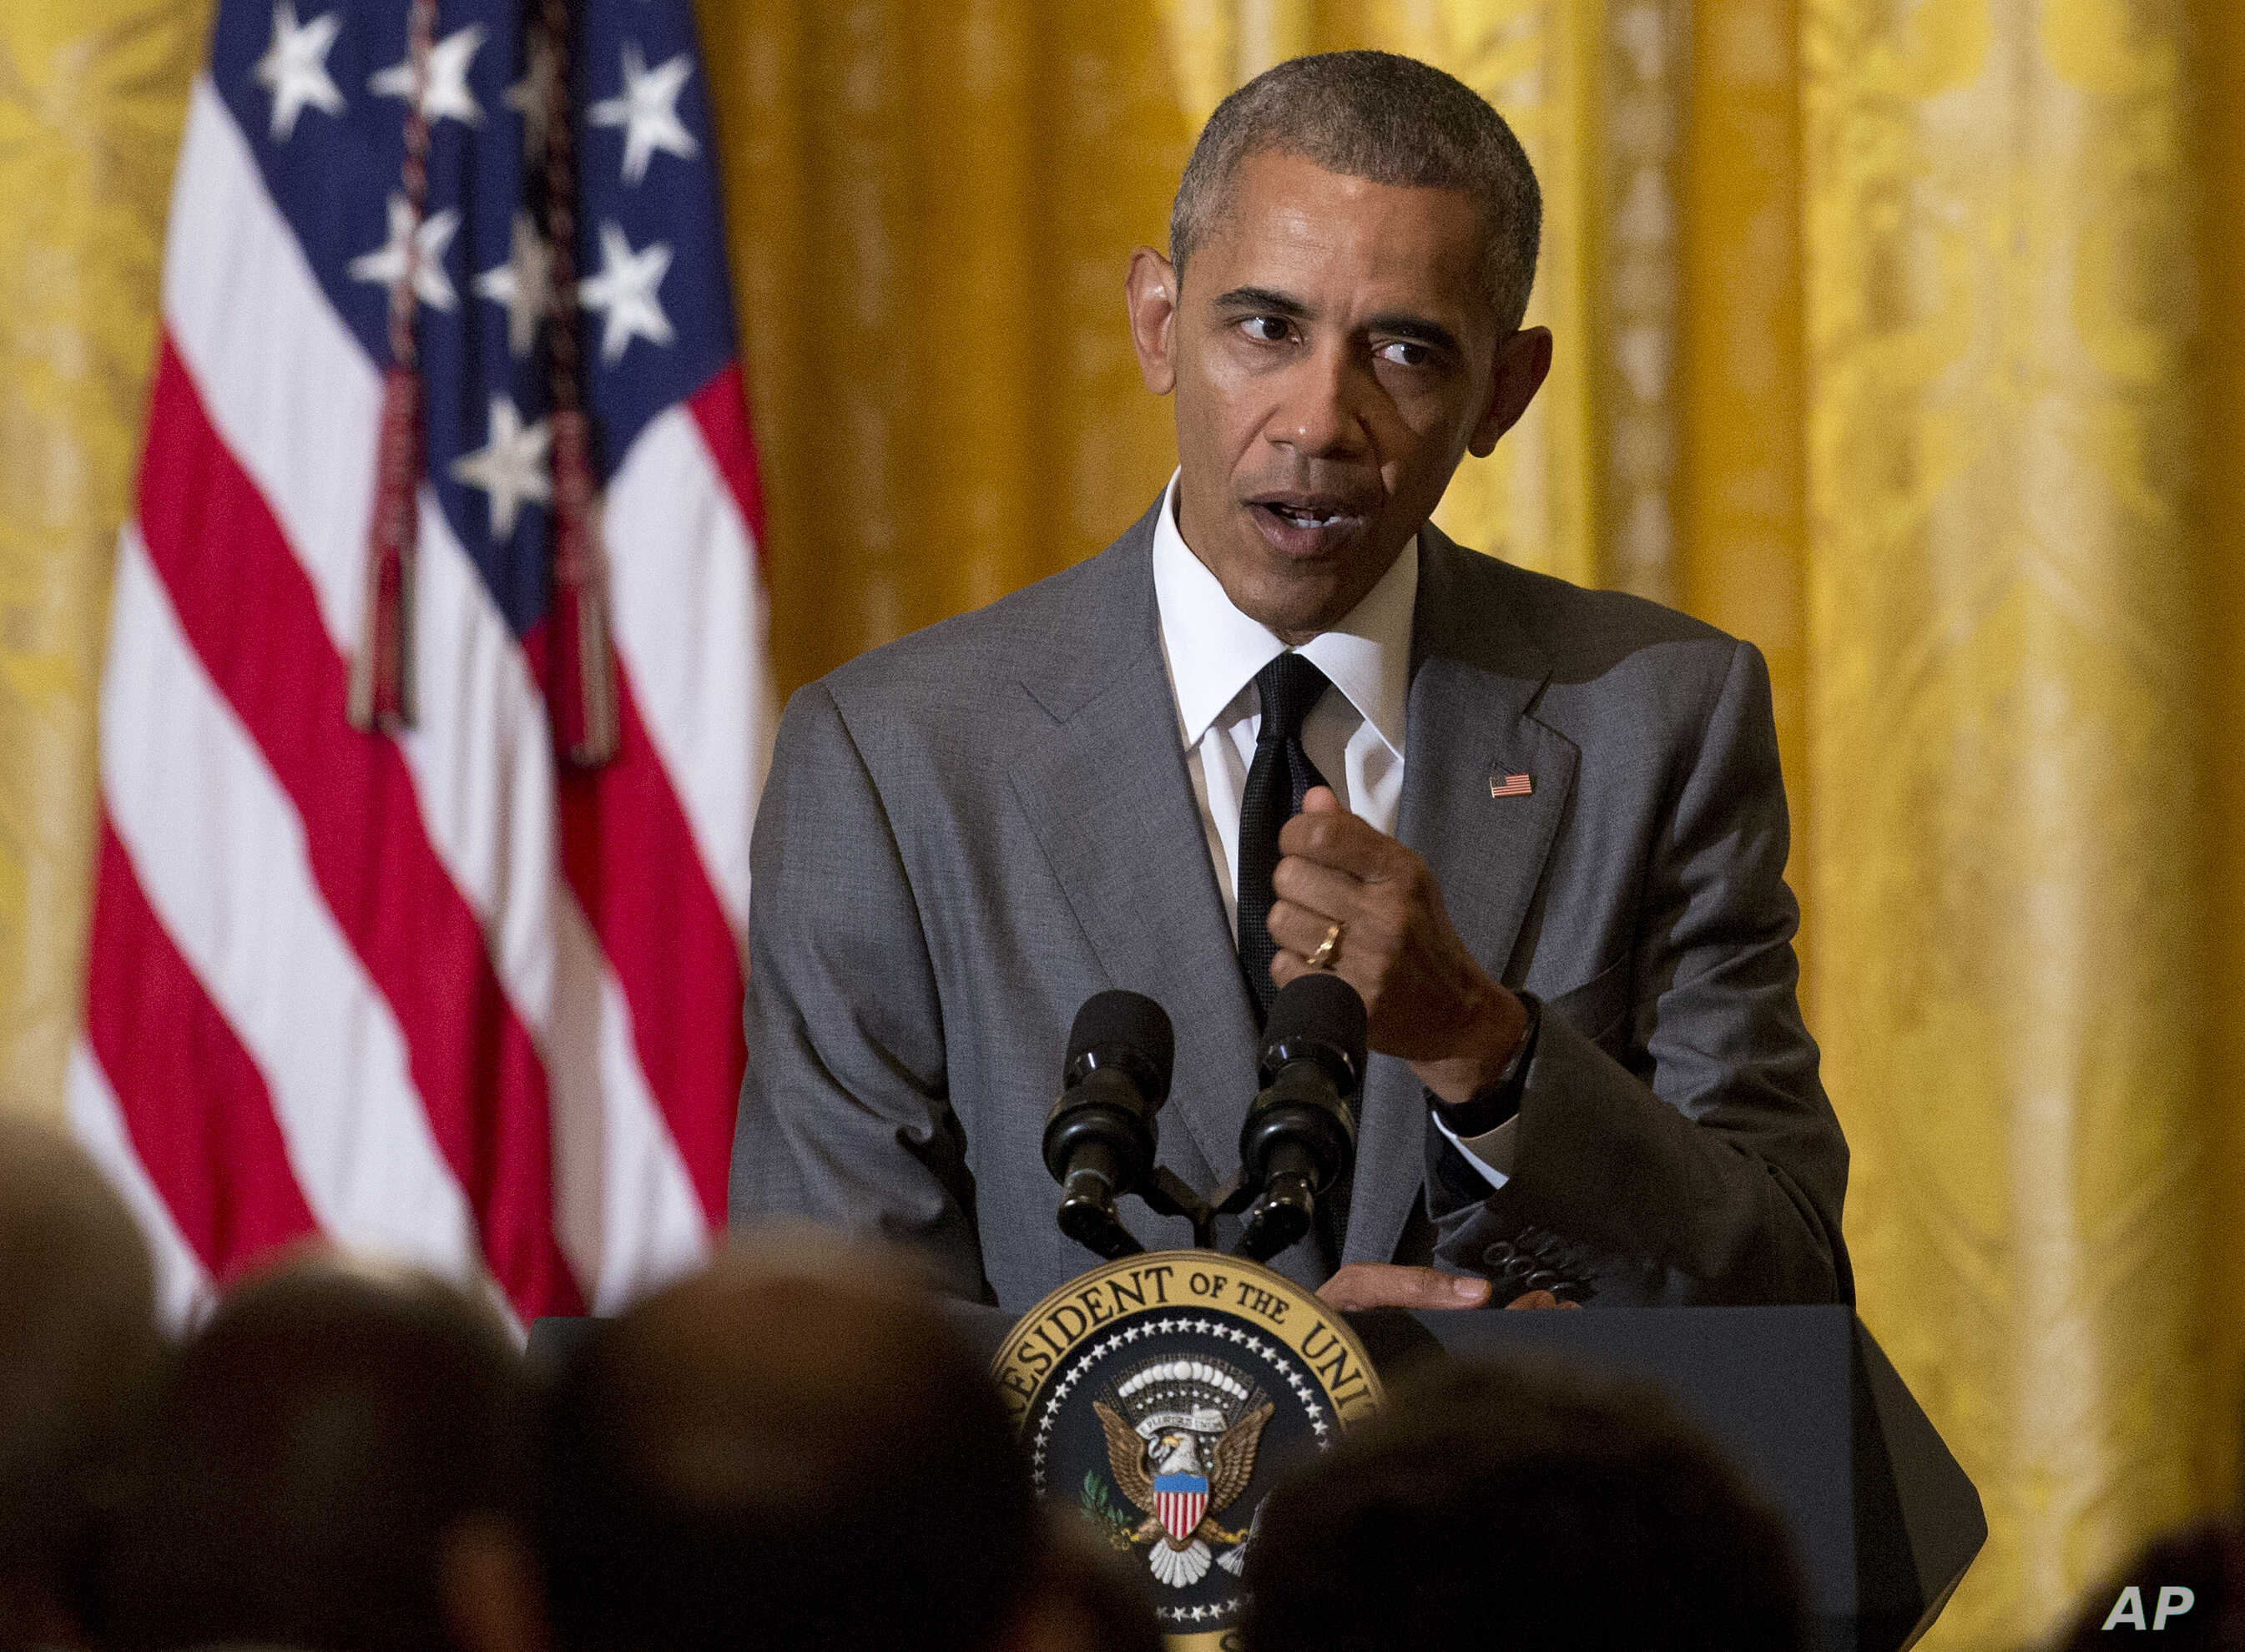 President Barack Obama speaks about the attack in Nice, France, during a reception for Washington diplomats at the White House, July 15, 2016.